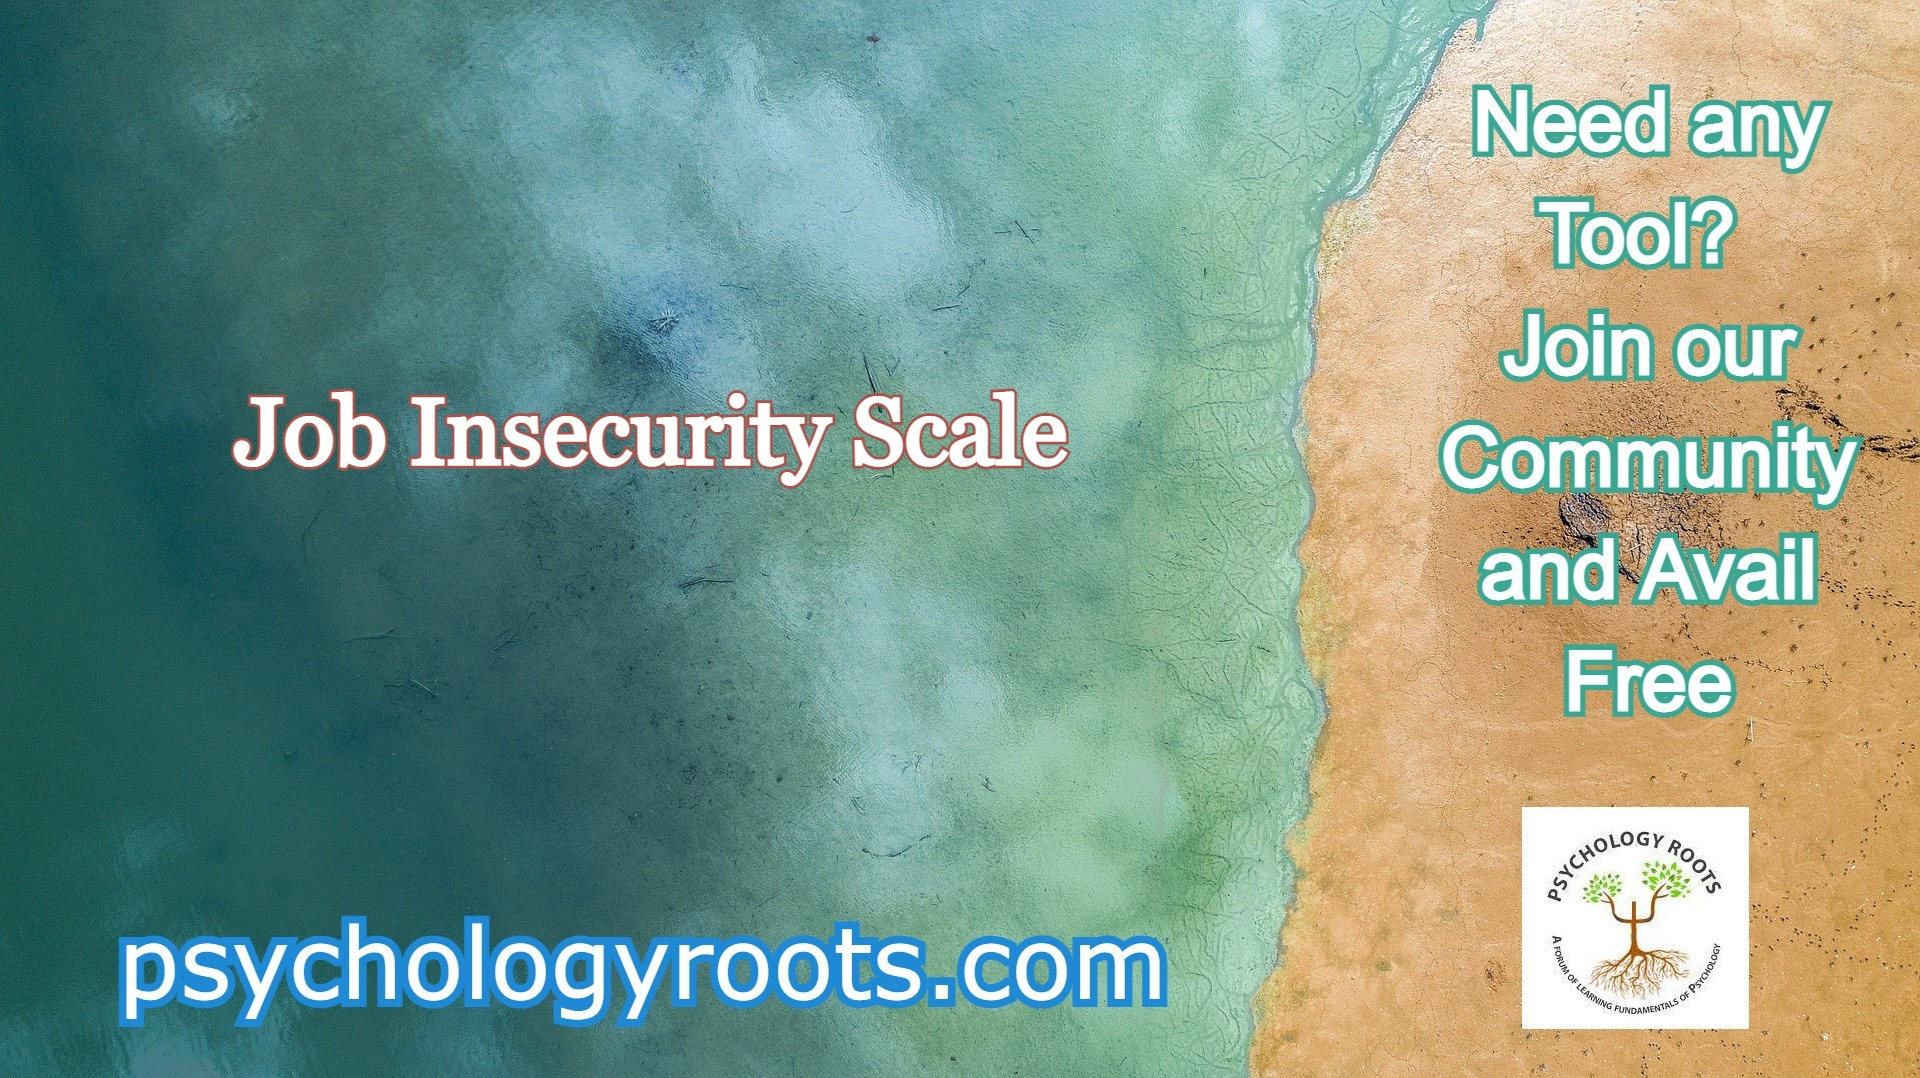 Job Insecurity Scale